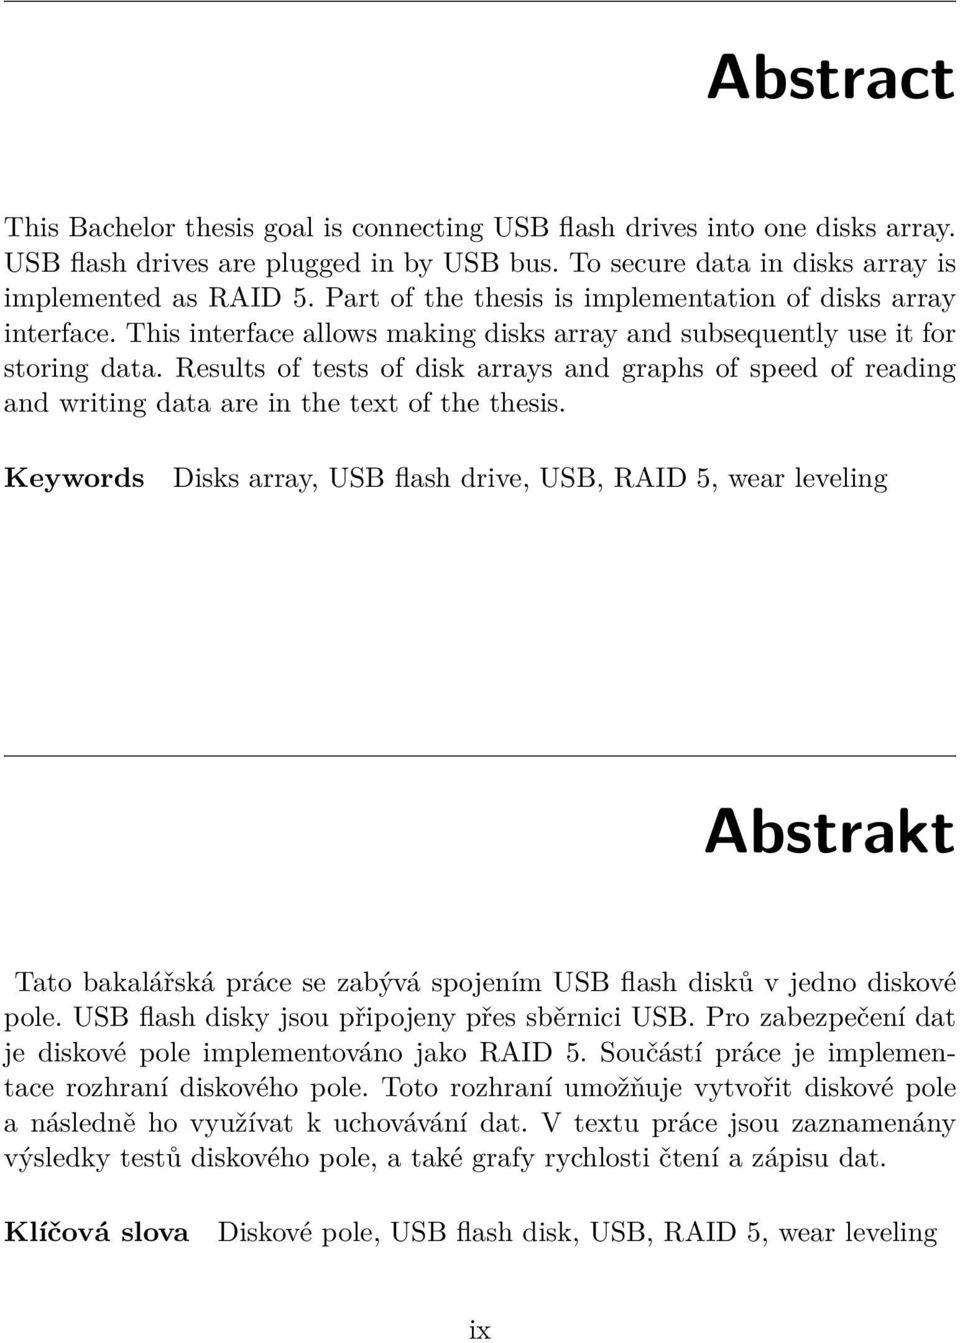 Results of tests of disk arrays and graphs of speed of reading and writing data are in the text of the thesis.